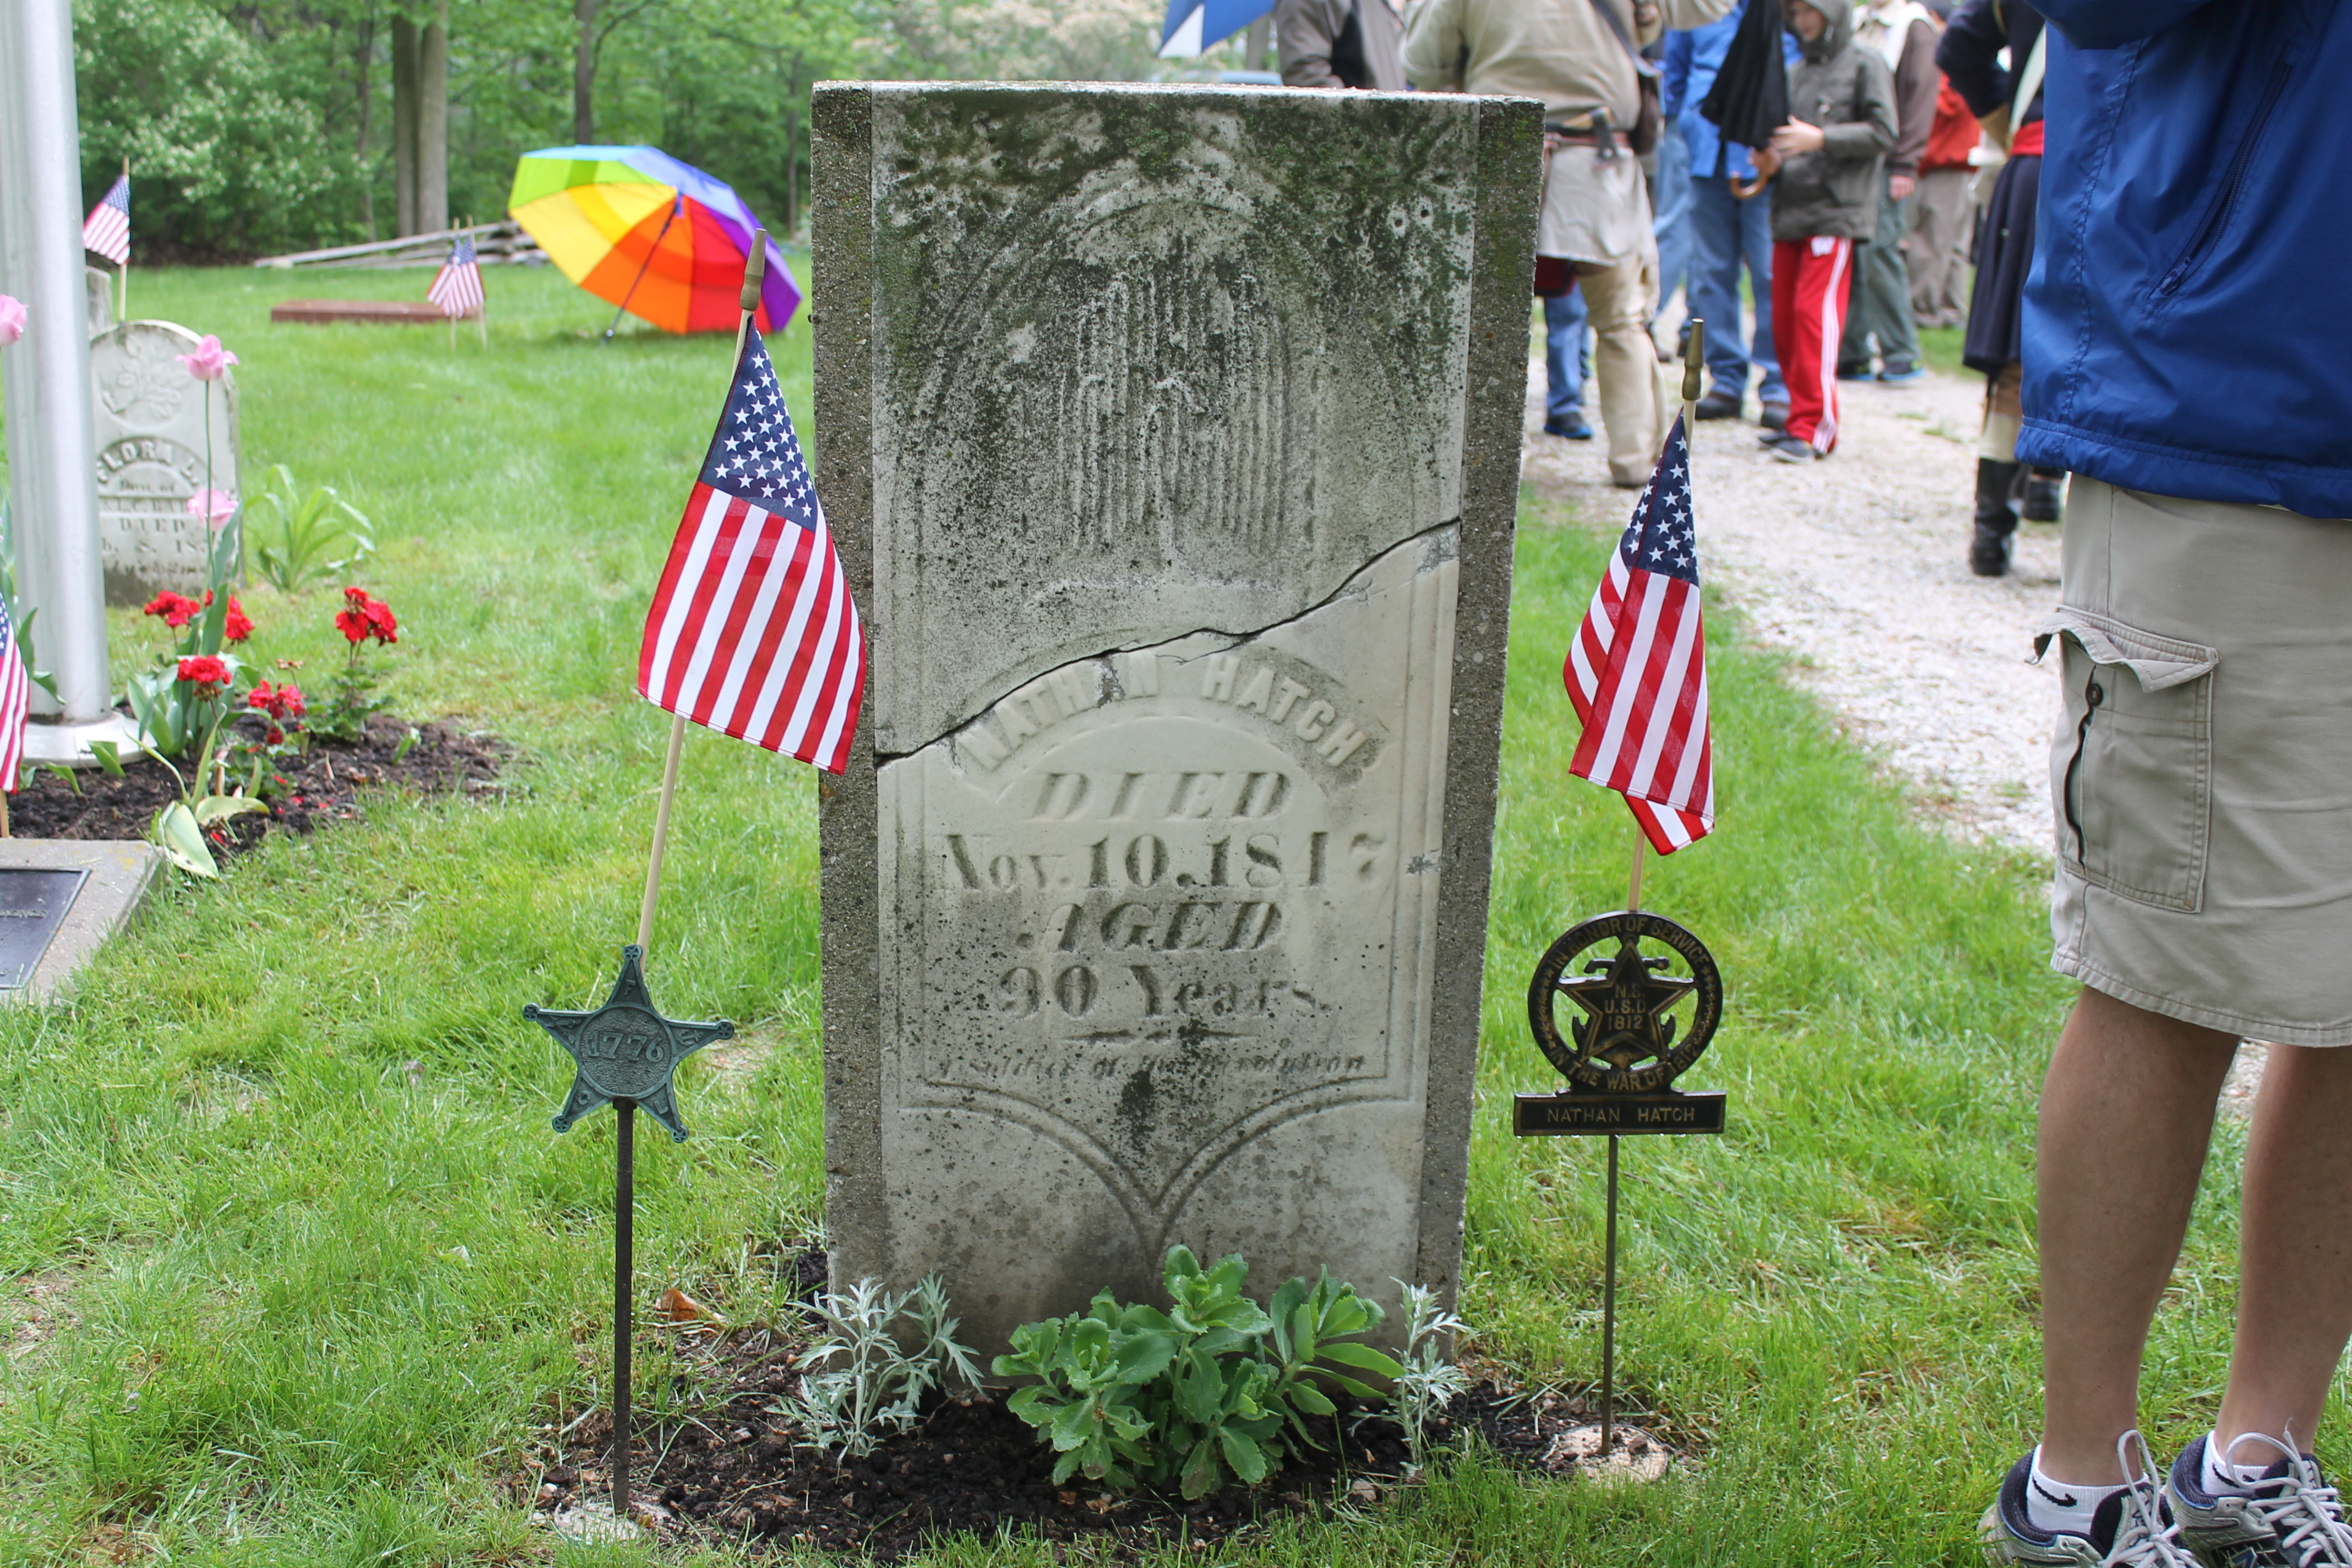 Nathan Hatch, Revolutionary War Hero ceremony